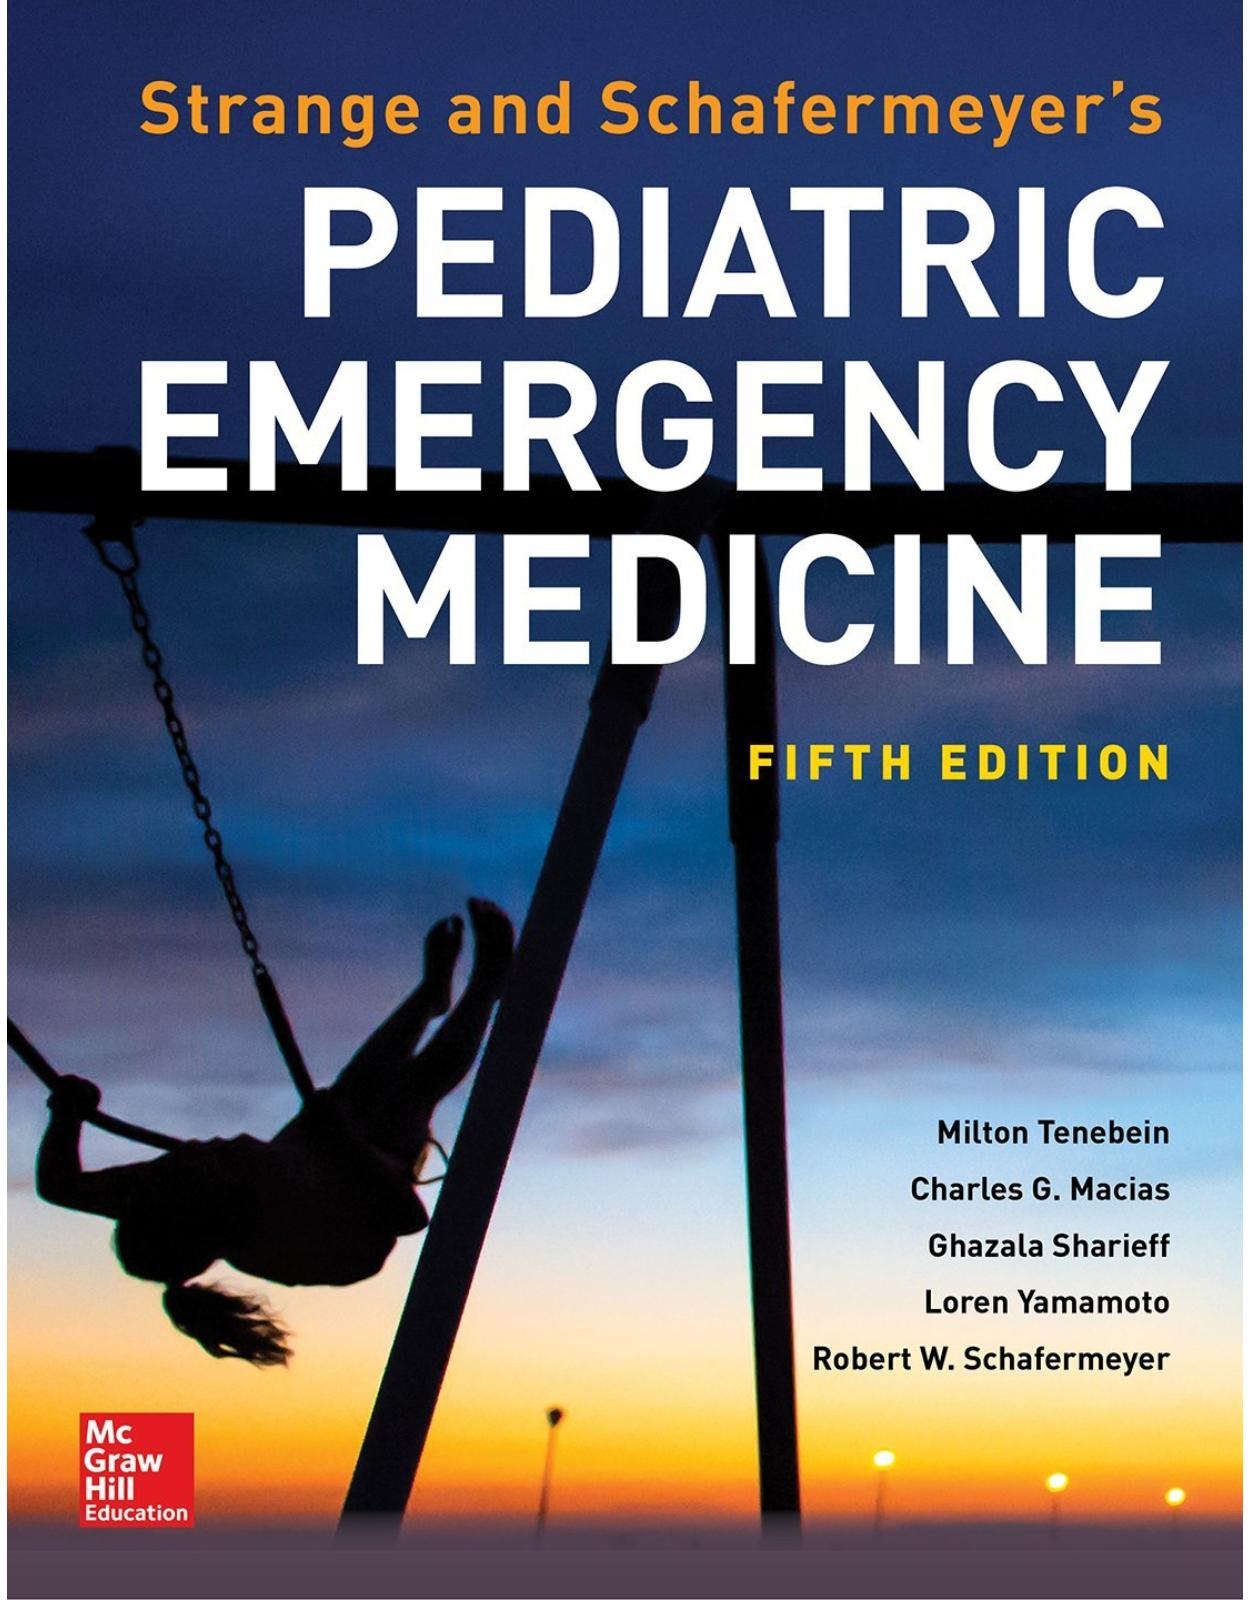 Strange and Schafermeyer's Pediatric Emergency Medicine, Fifth Edition